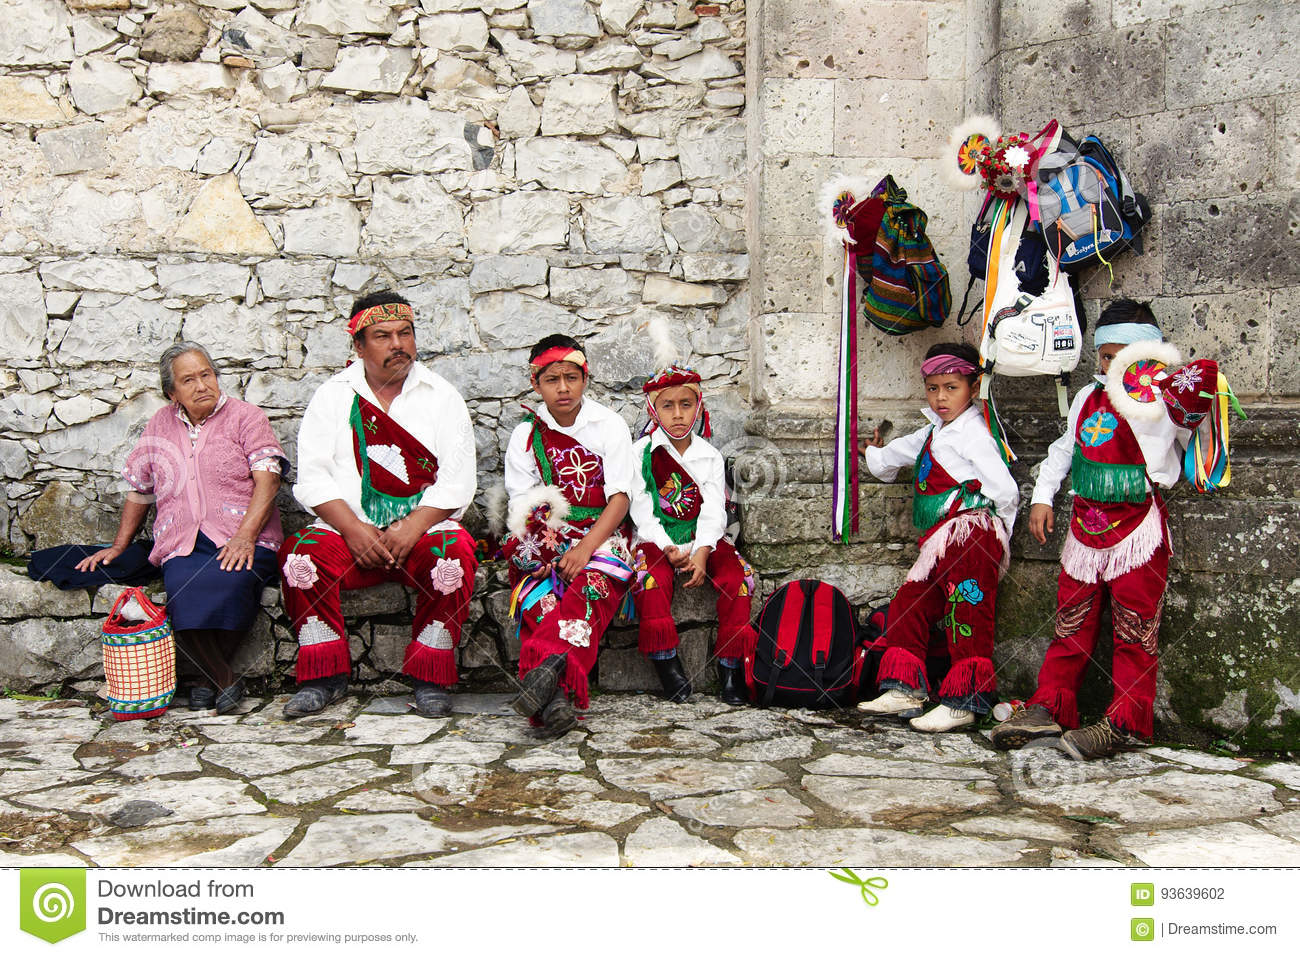 CUETZALAN, MEXICO - 2012: A family of acrobats known as `los voladores` prepare to perform in the Cuetzalan zocalo, while standing